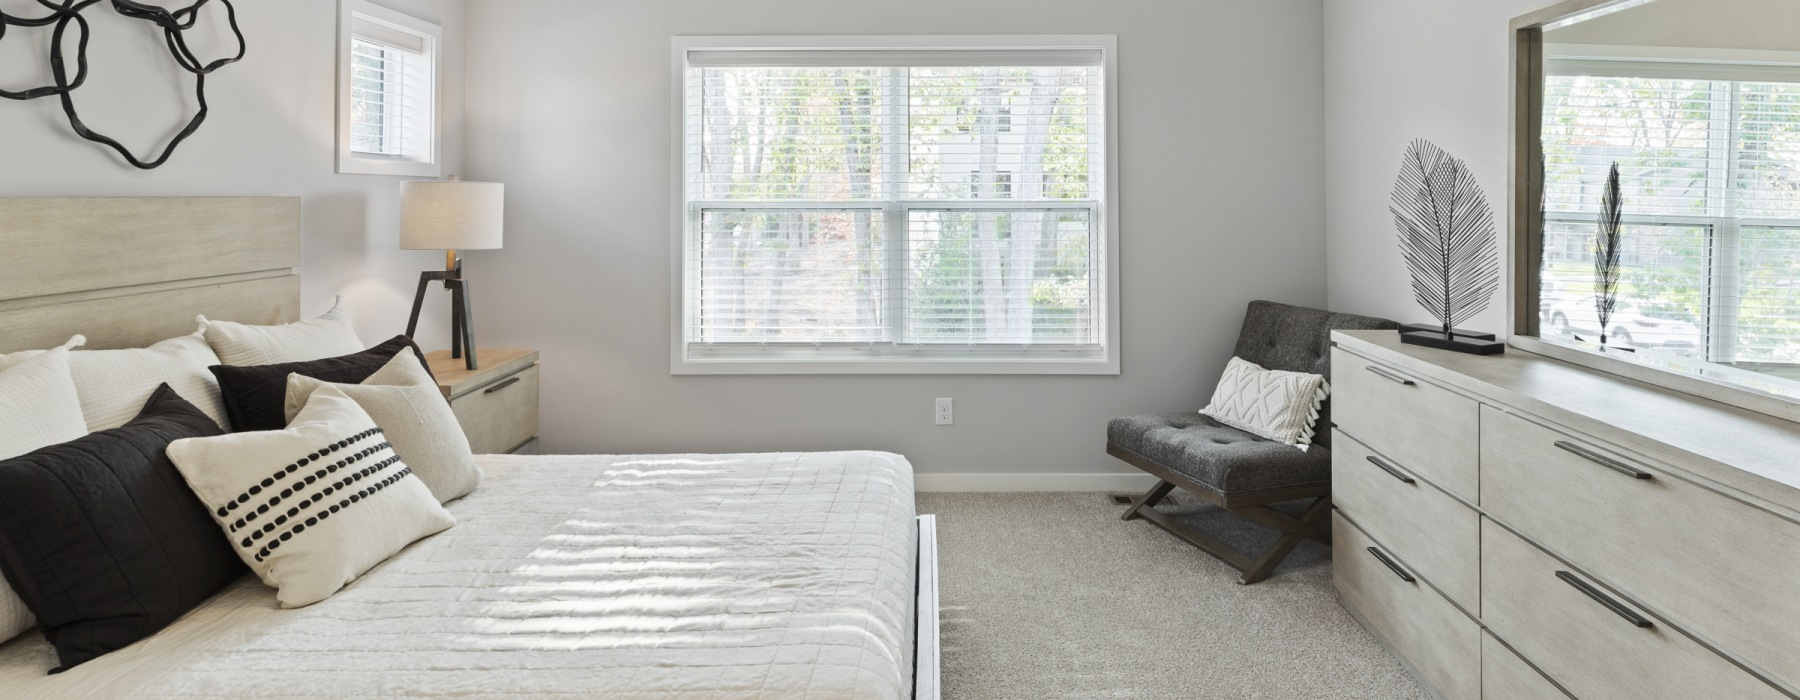 Well Lit Spacious Bedrooms With Plush Carpet At Beacon Ridge Single Family Rentals In Plymouth, MN